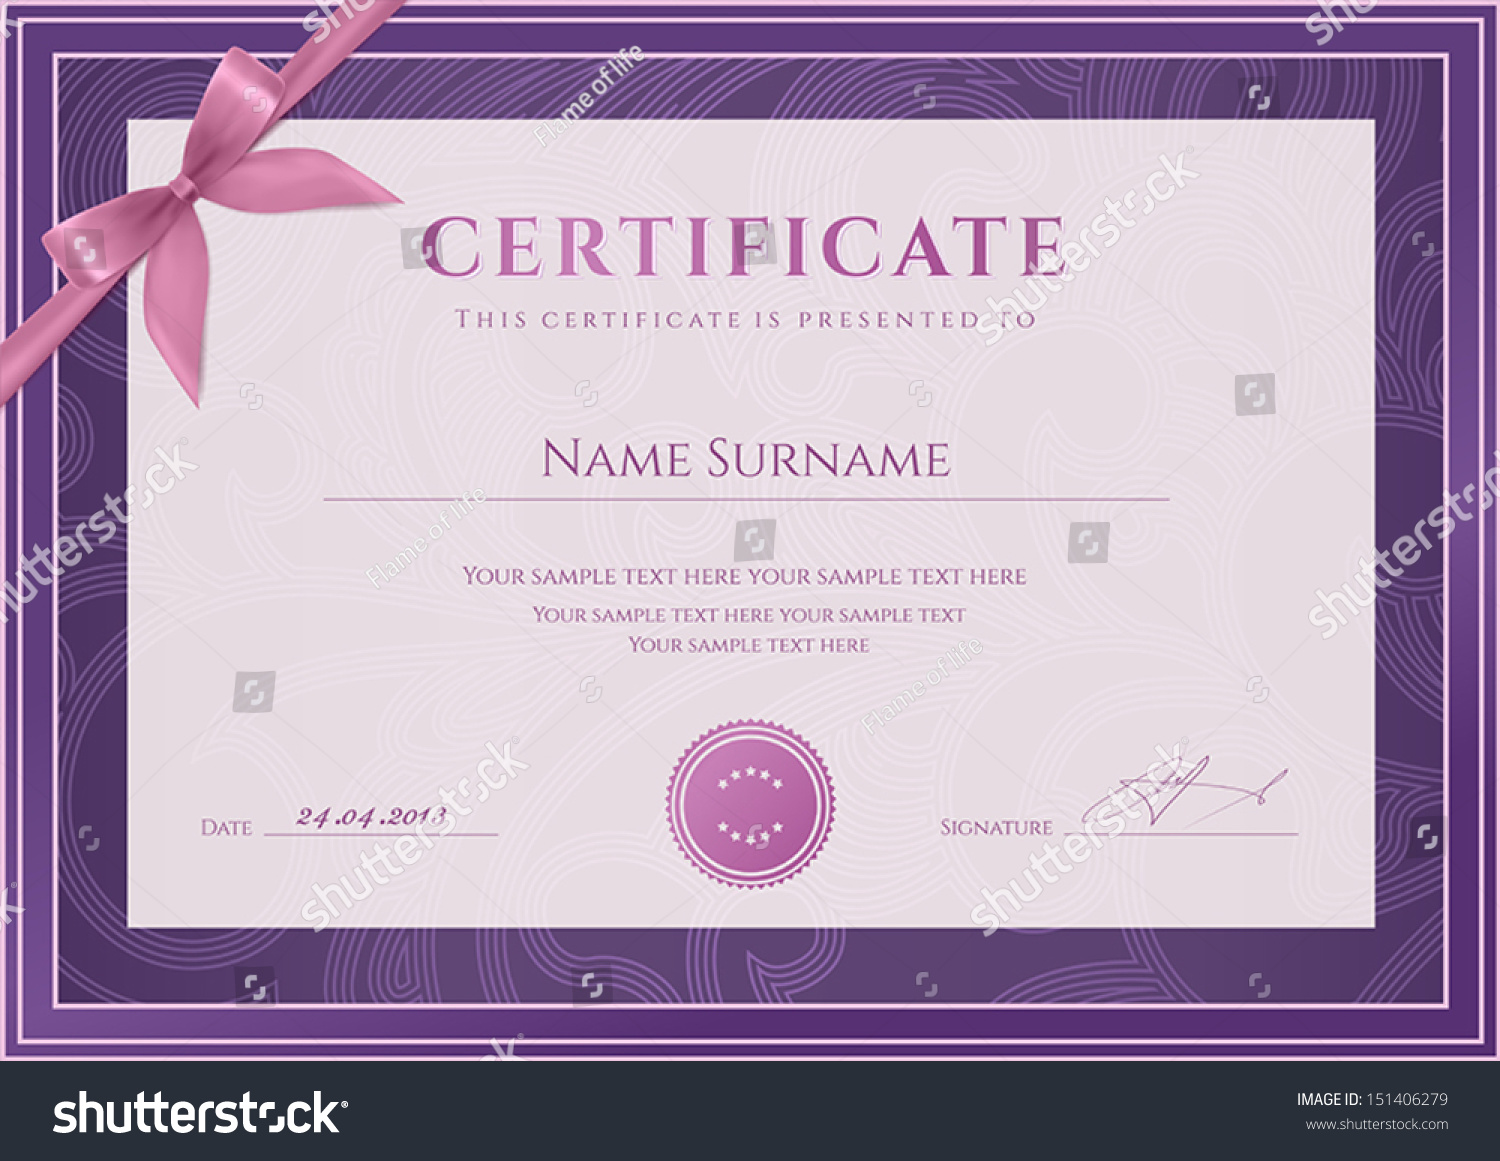 Certificate Diploma Completion Template Background Floral ...